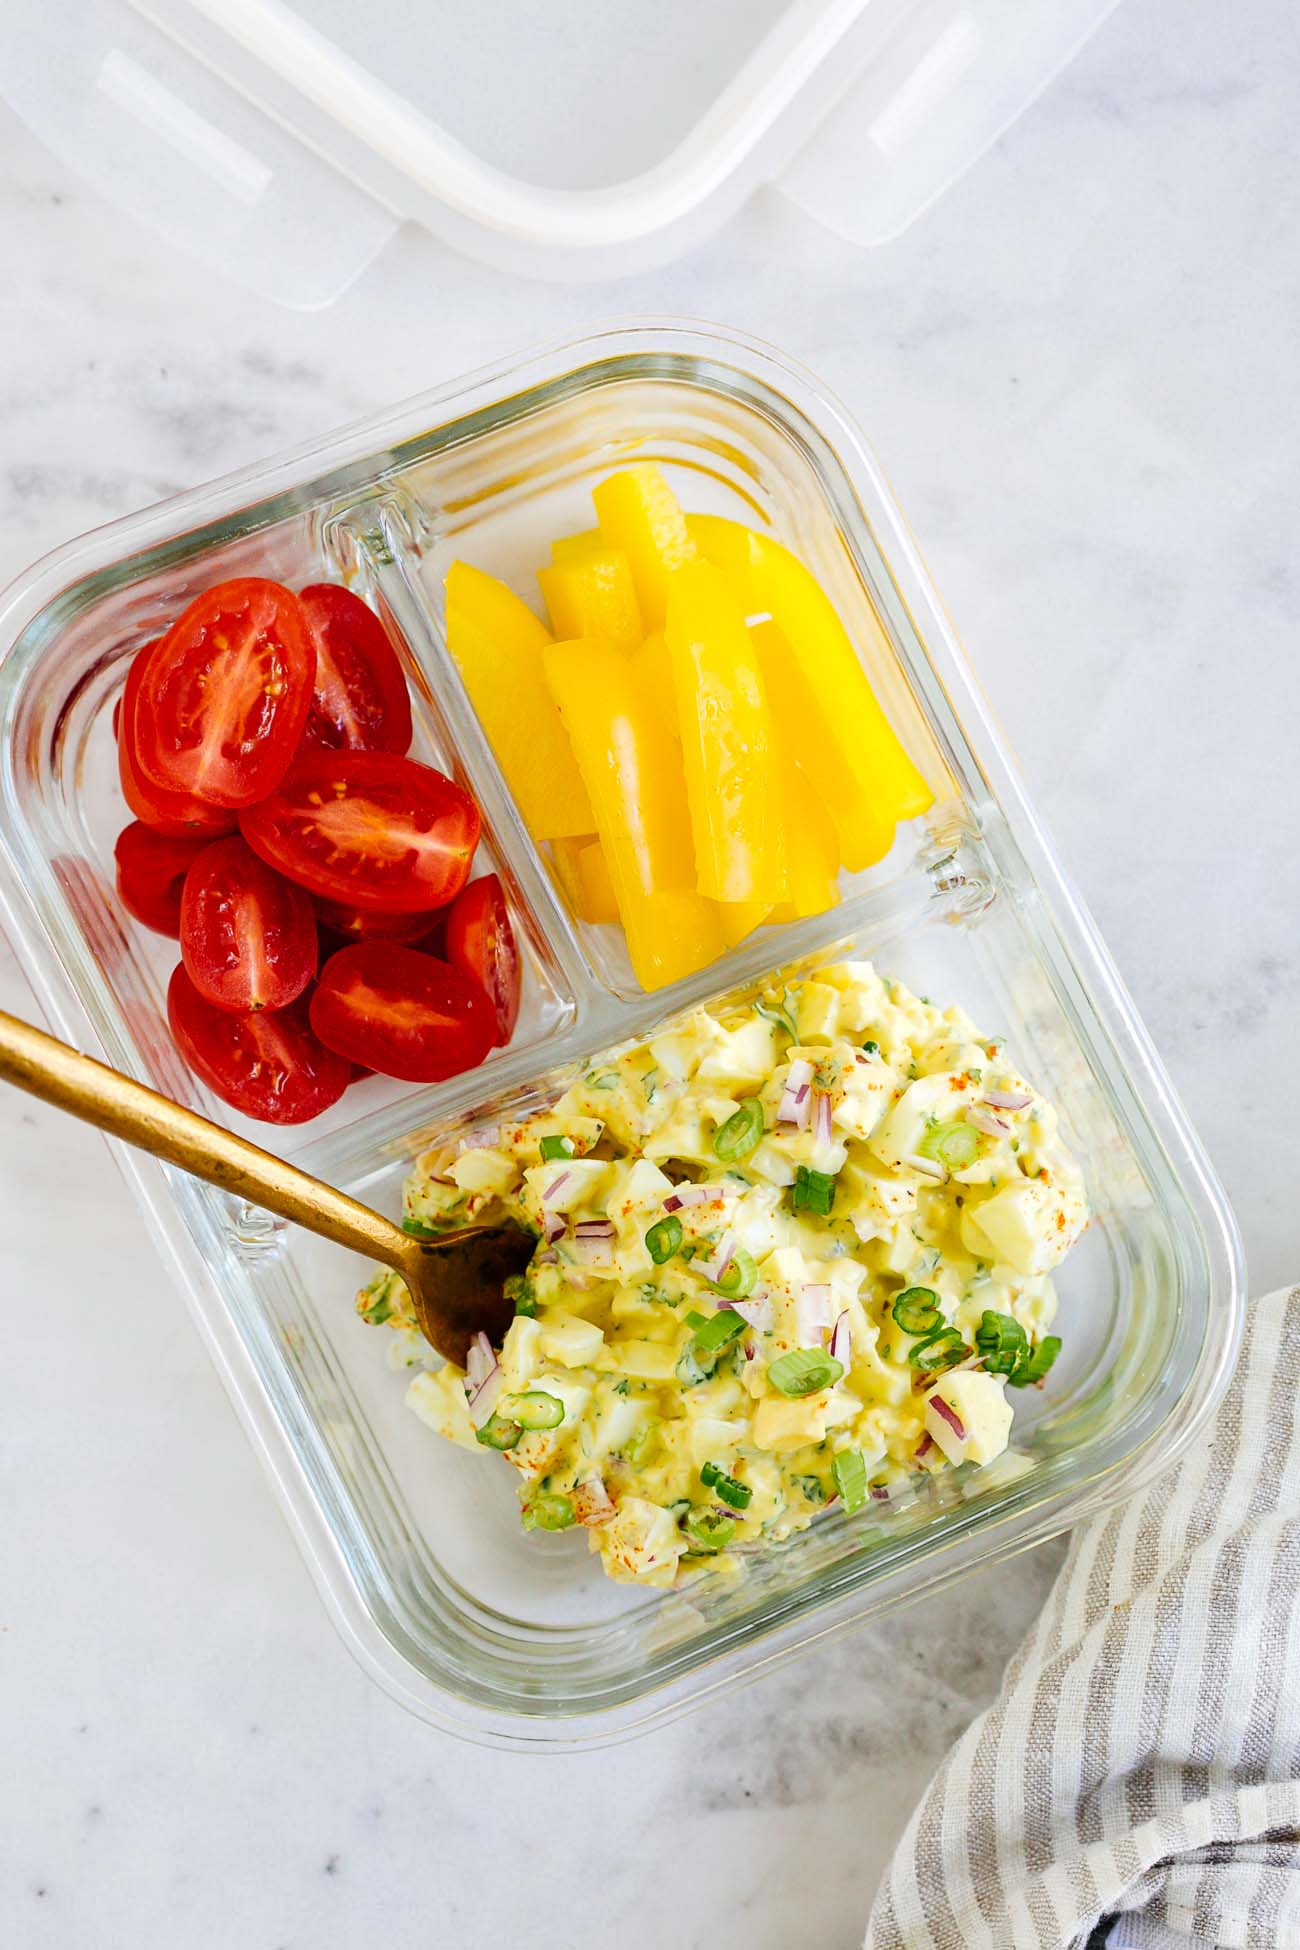 Meal prep container with 3 compartments holding egg salad, cherry tomatoes, and bell peppers.